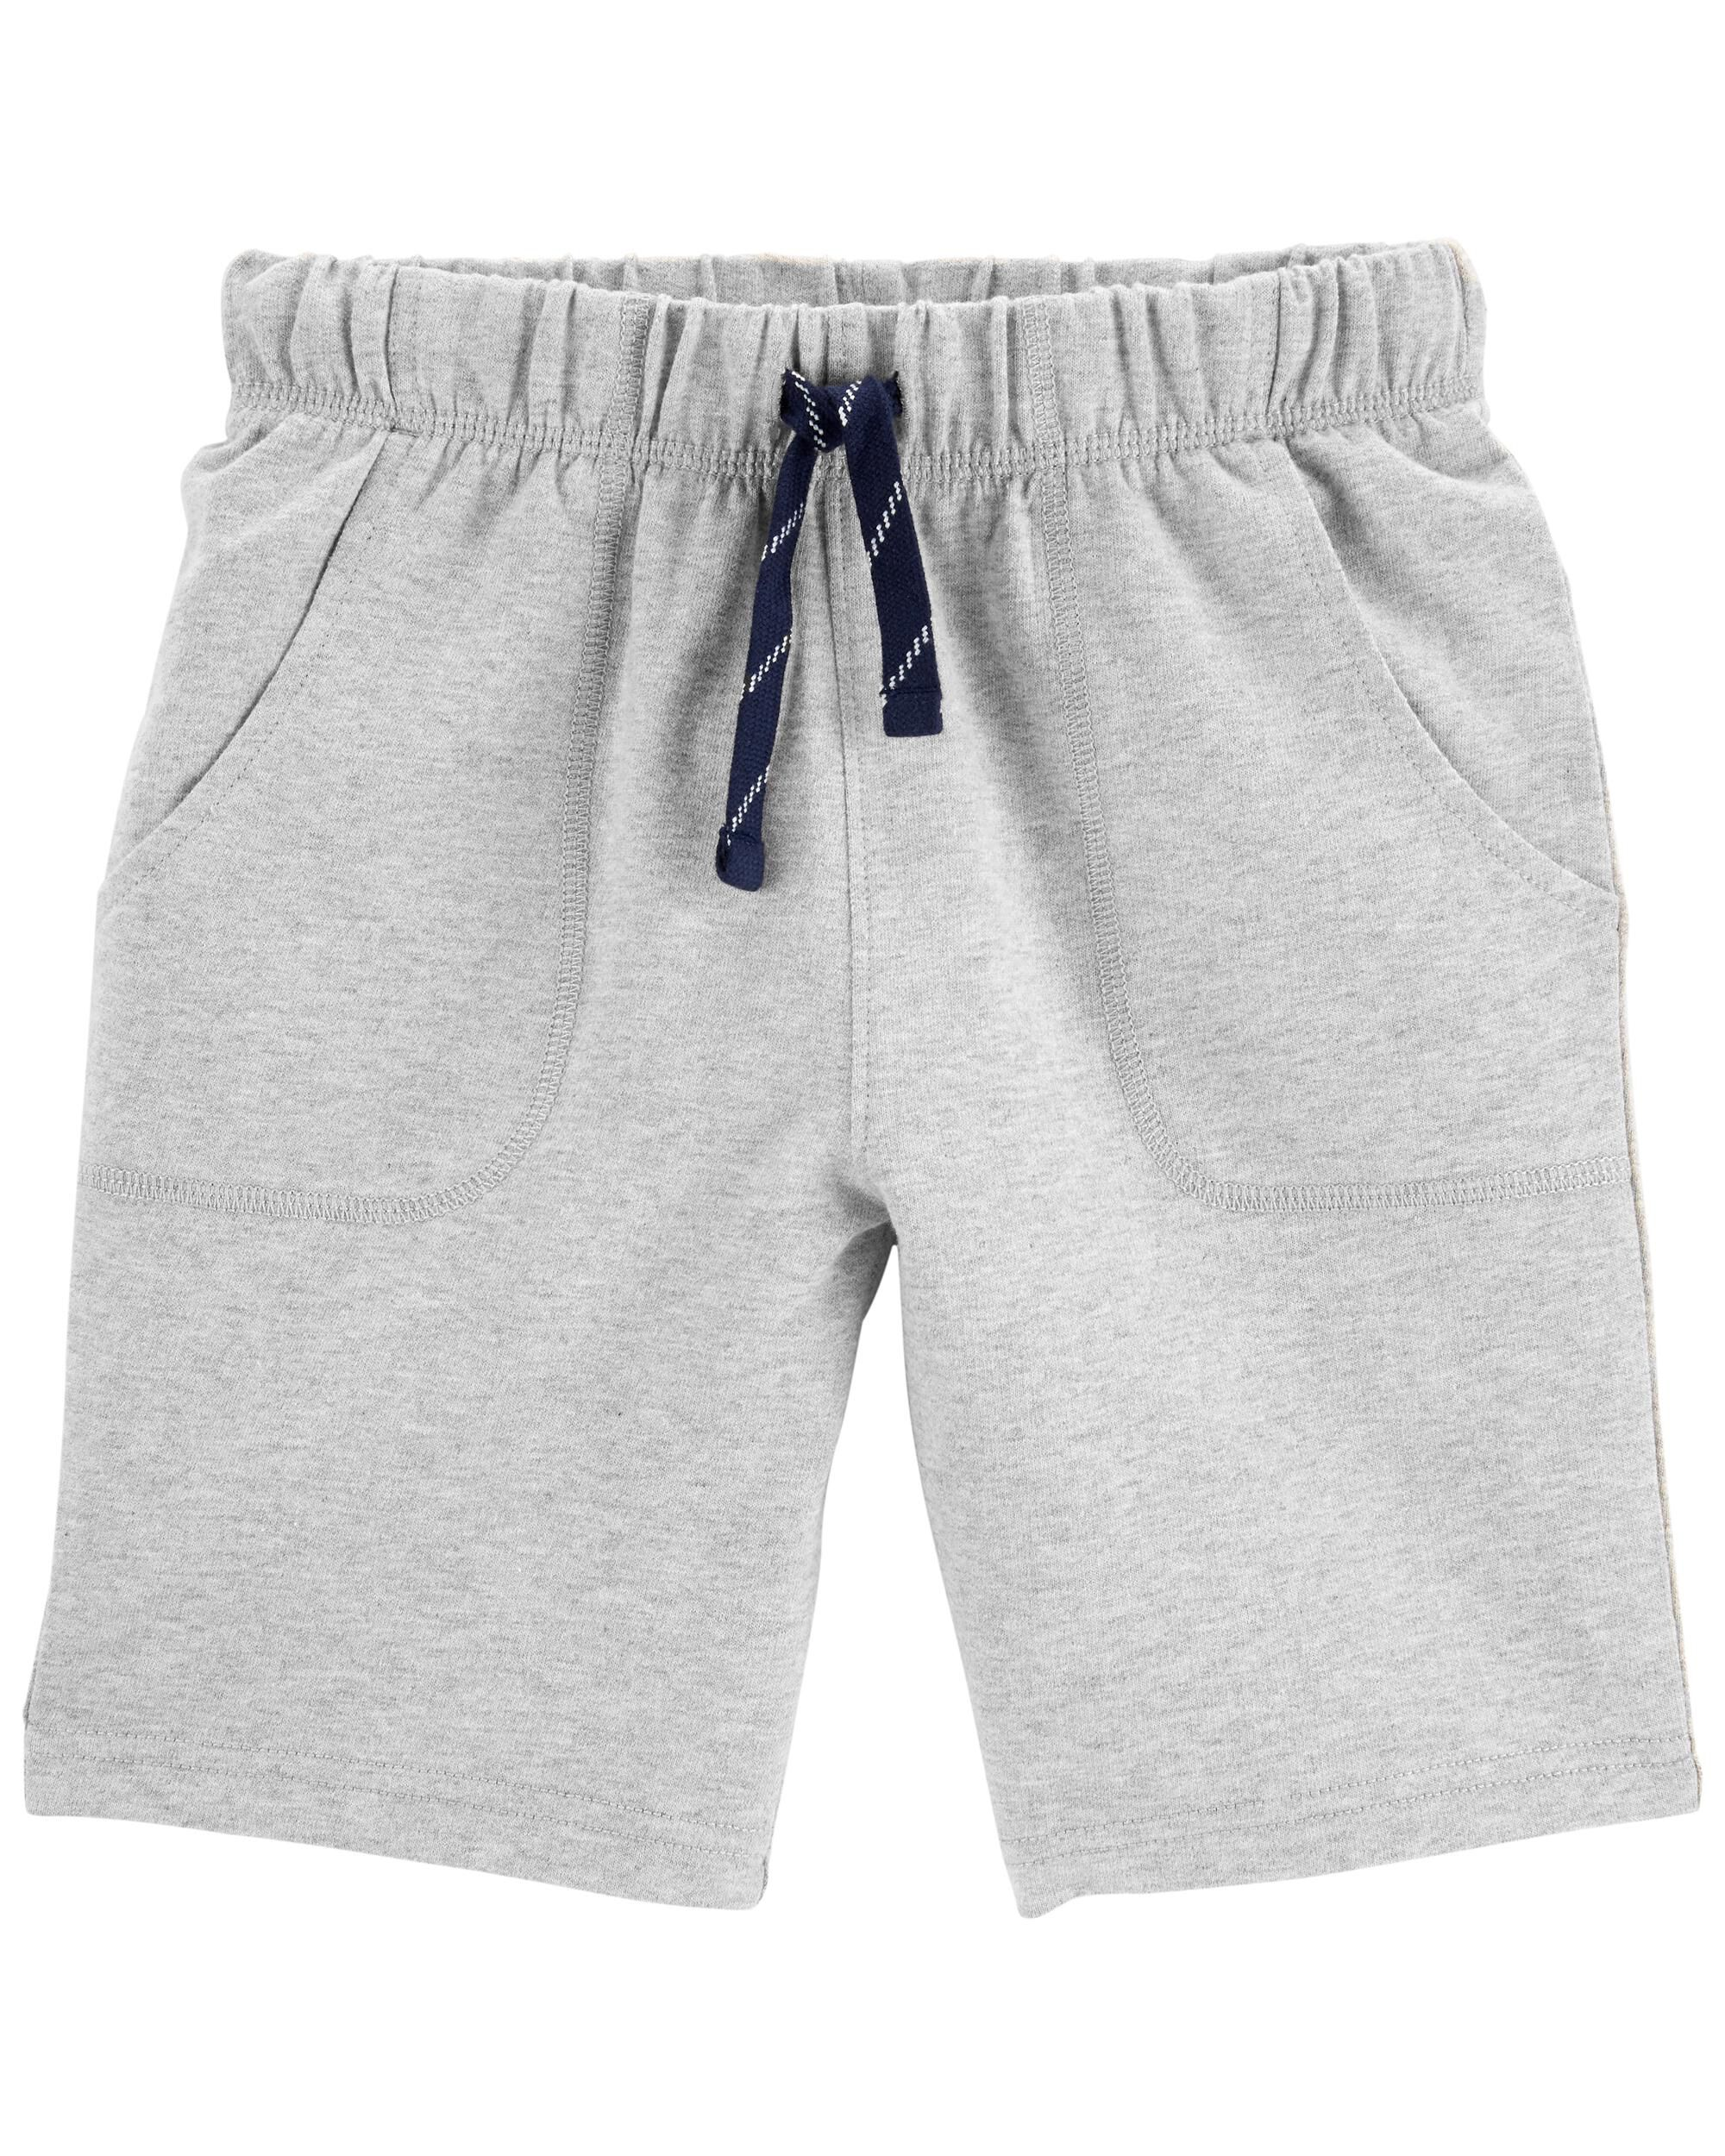 *DOORBUSTER* Pull-On French Terry Shorts